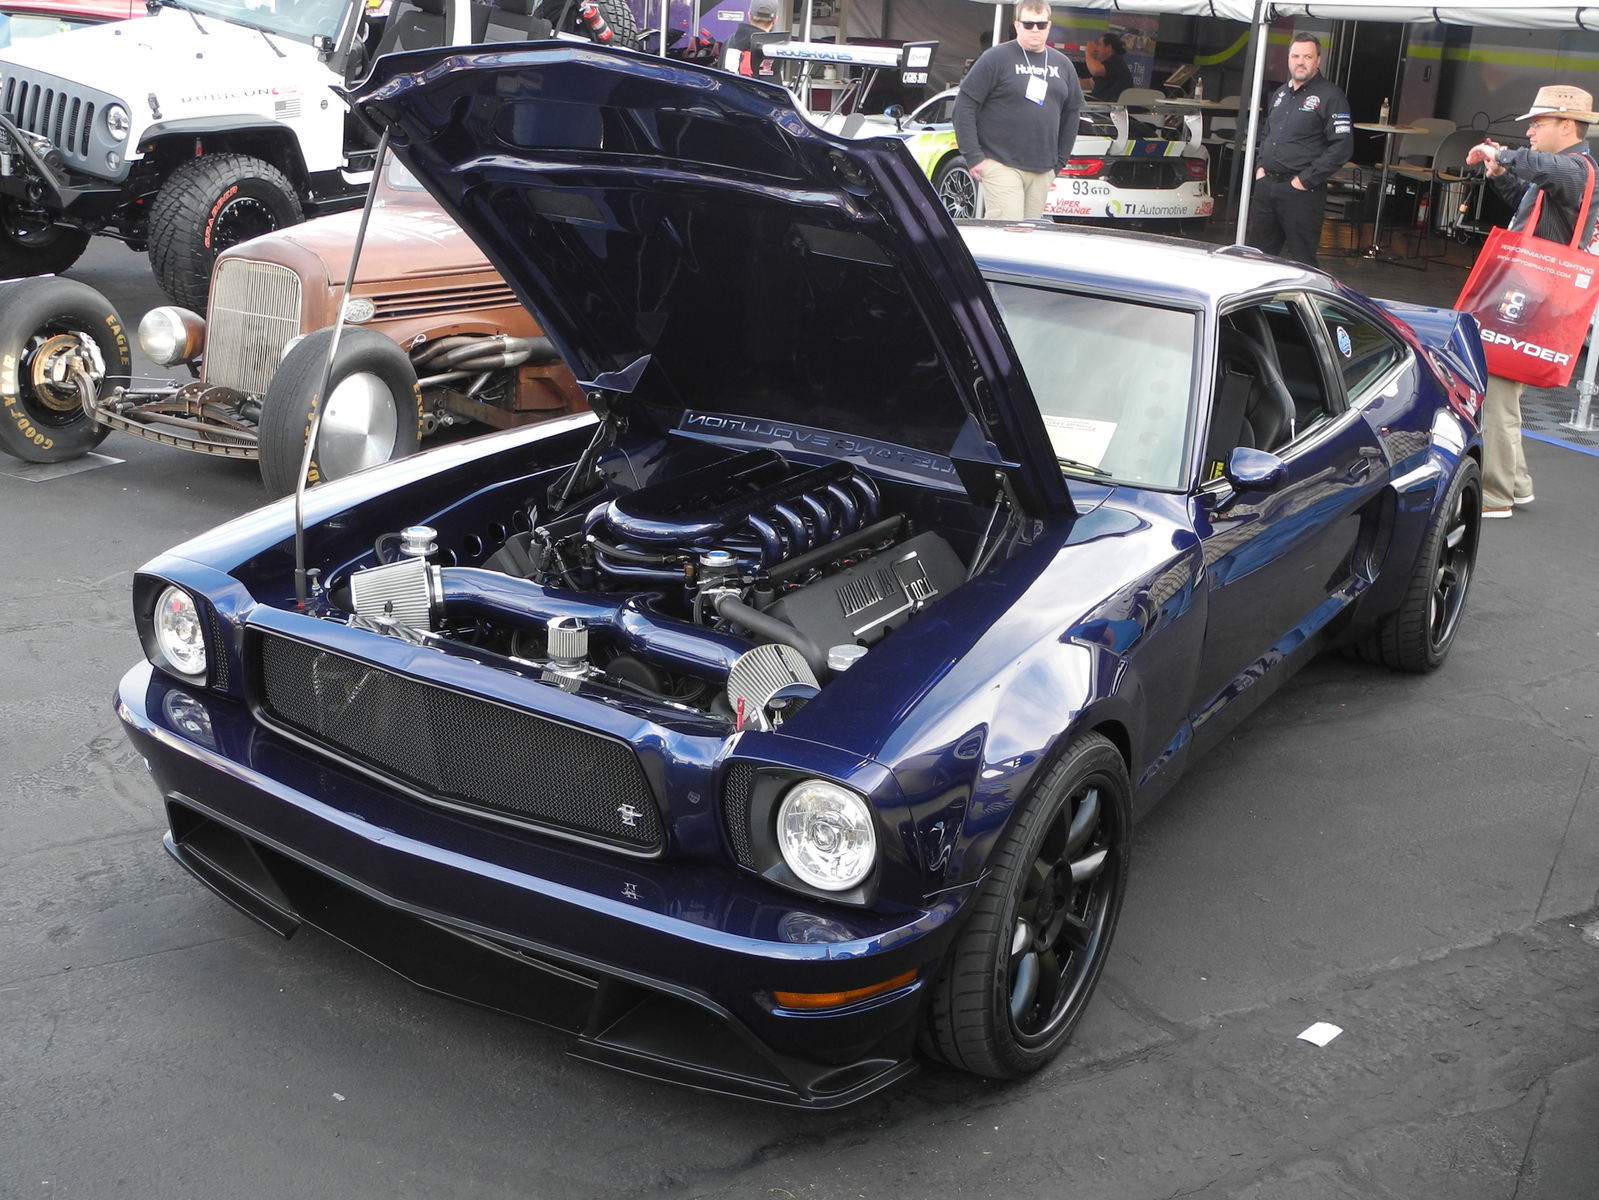 1978 Ford Mustang | Brett Behrens' Triton V10-Powered